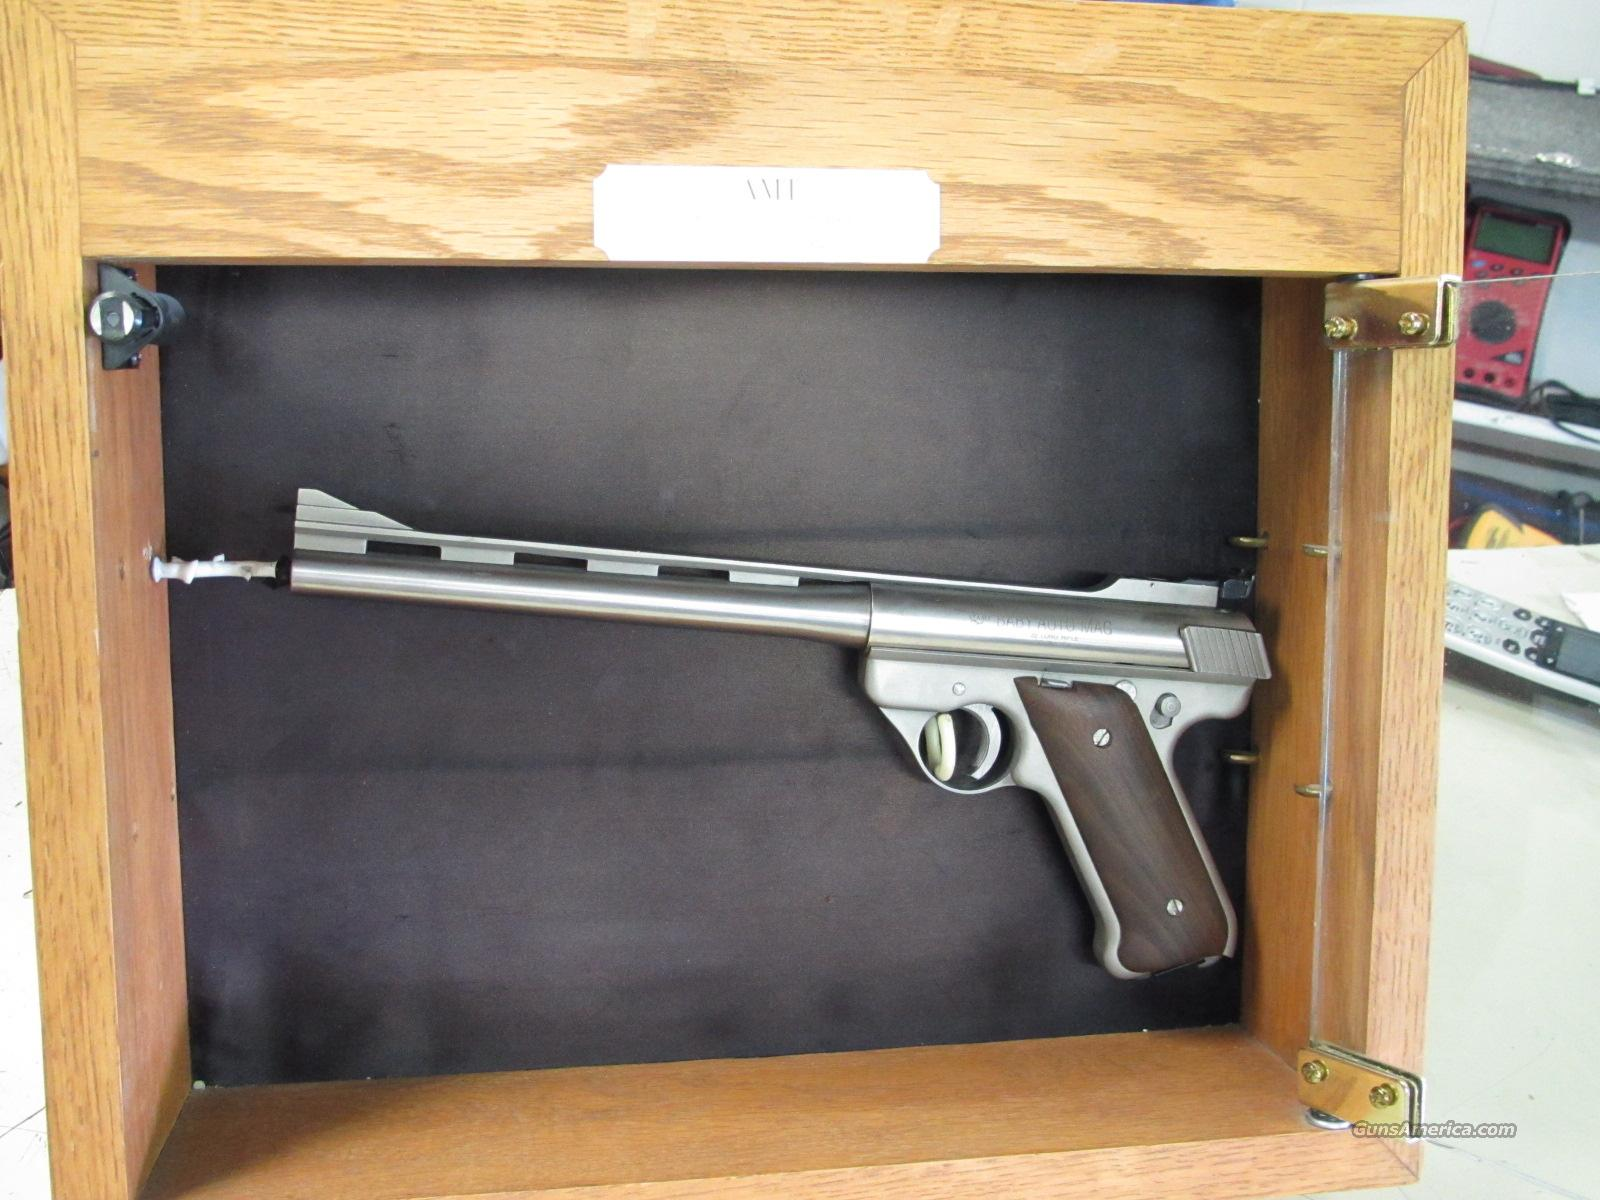 AMT Baby AutoMag .22 LR   Guns > Pistols > AMT Pistols > Other